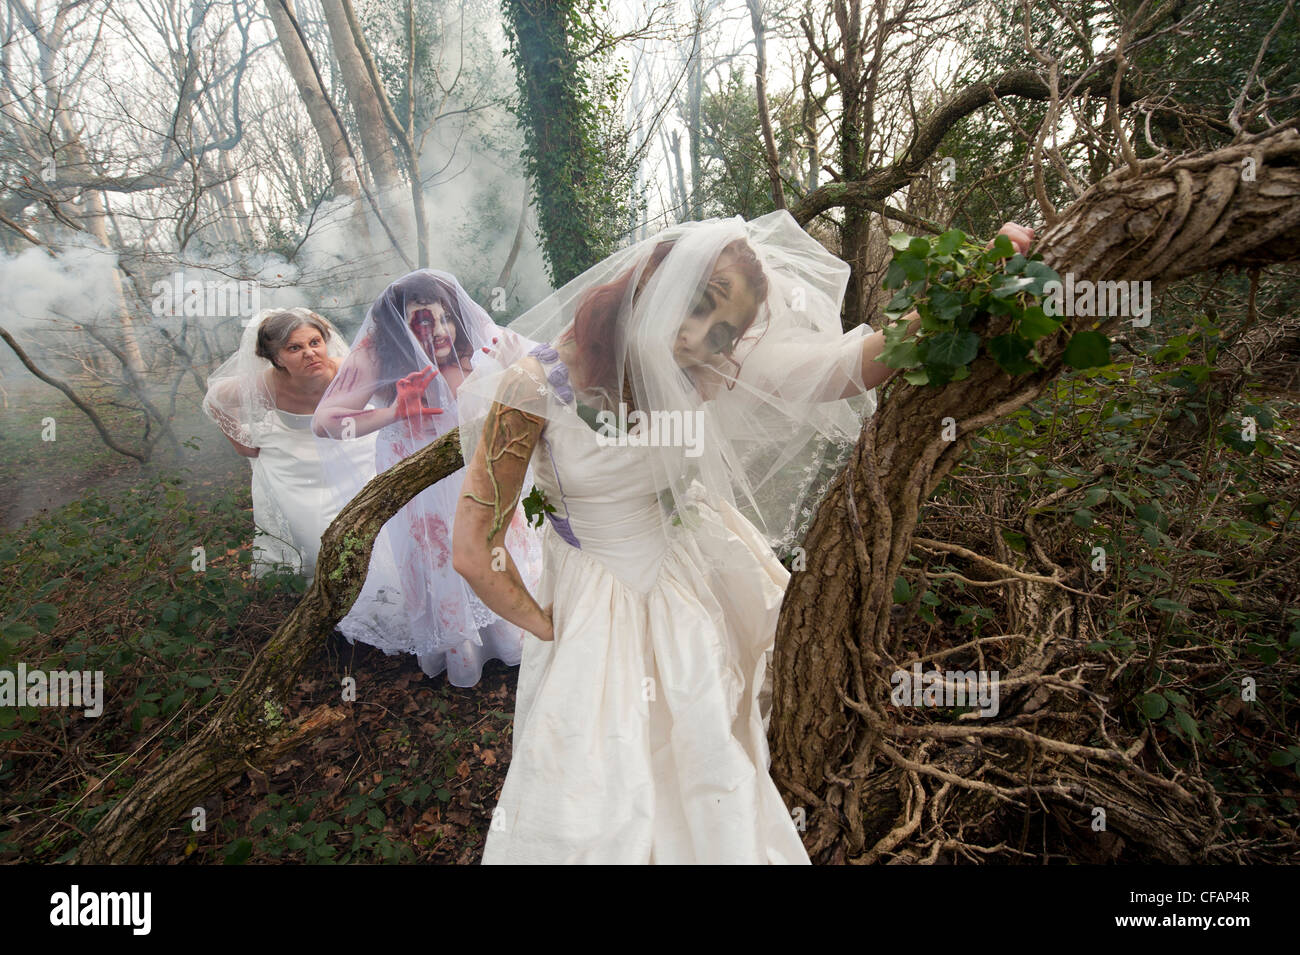 three young women dressed as brides taking part in a Zombie bride ...